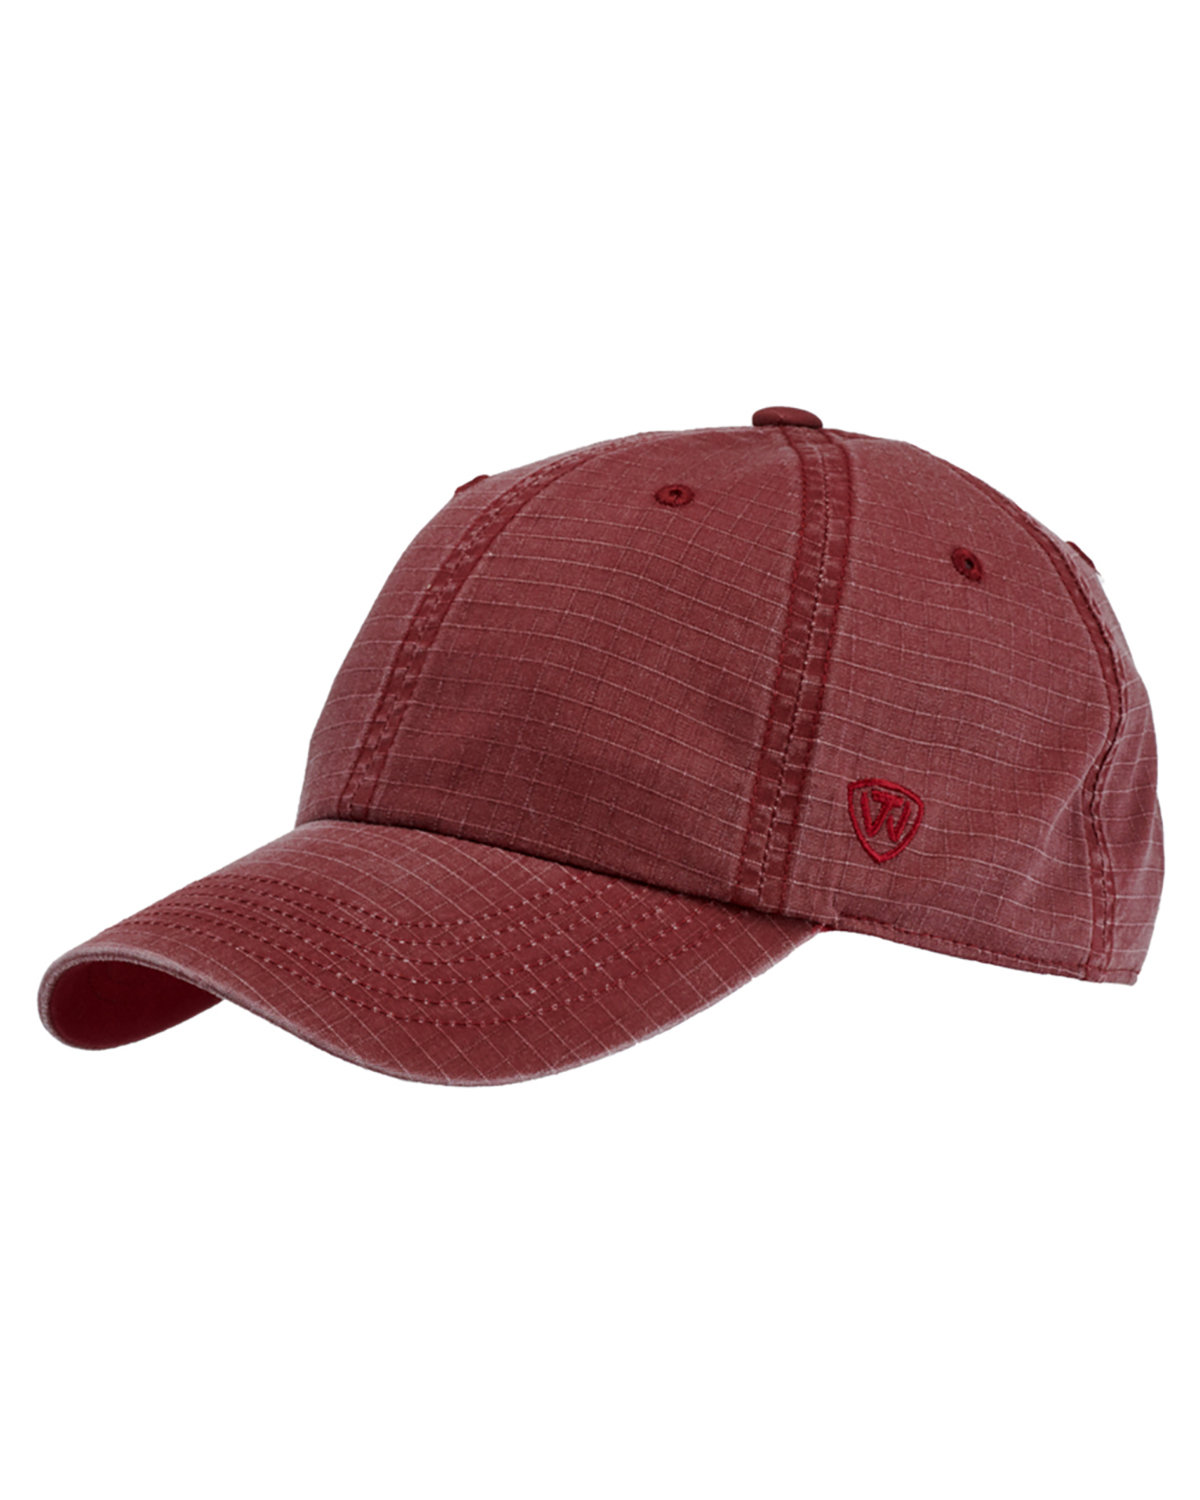 Top Of The World Ripper Washed Cotton Ripstop Hat BURGUNDY